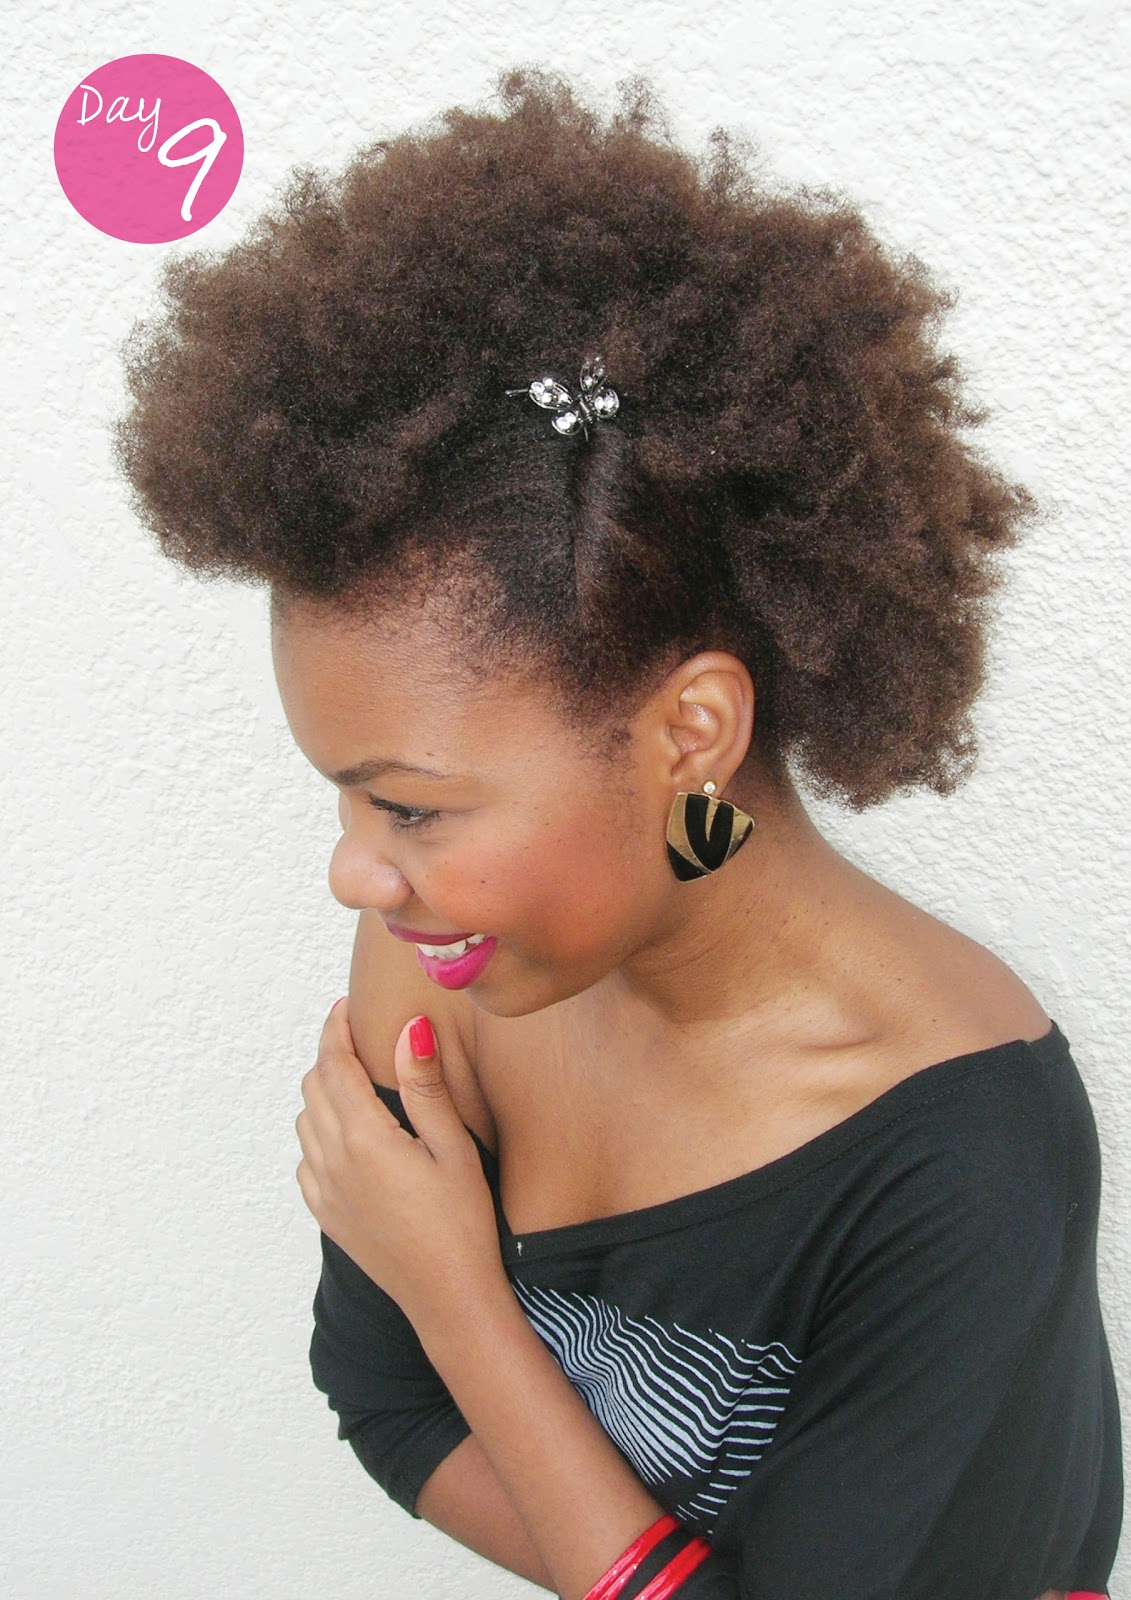 Natural Hair & Beauty Blog: 30 Days, 30 Hair Accessories: Day 9